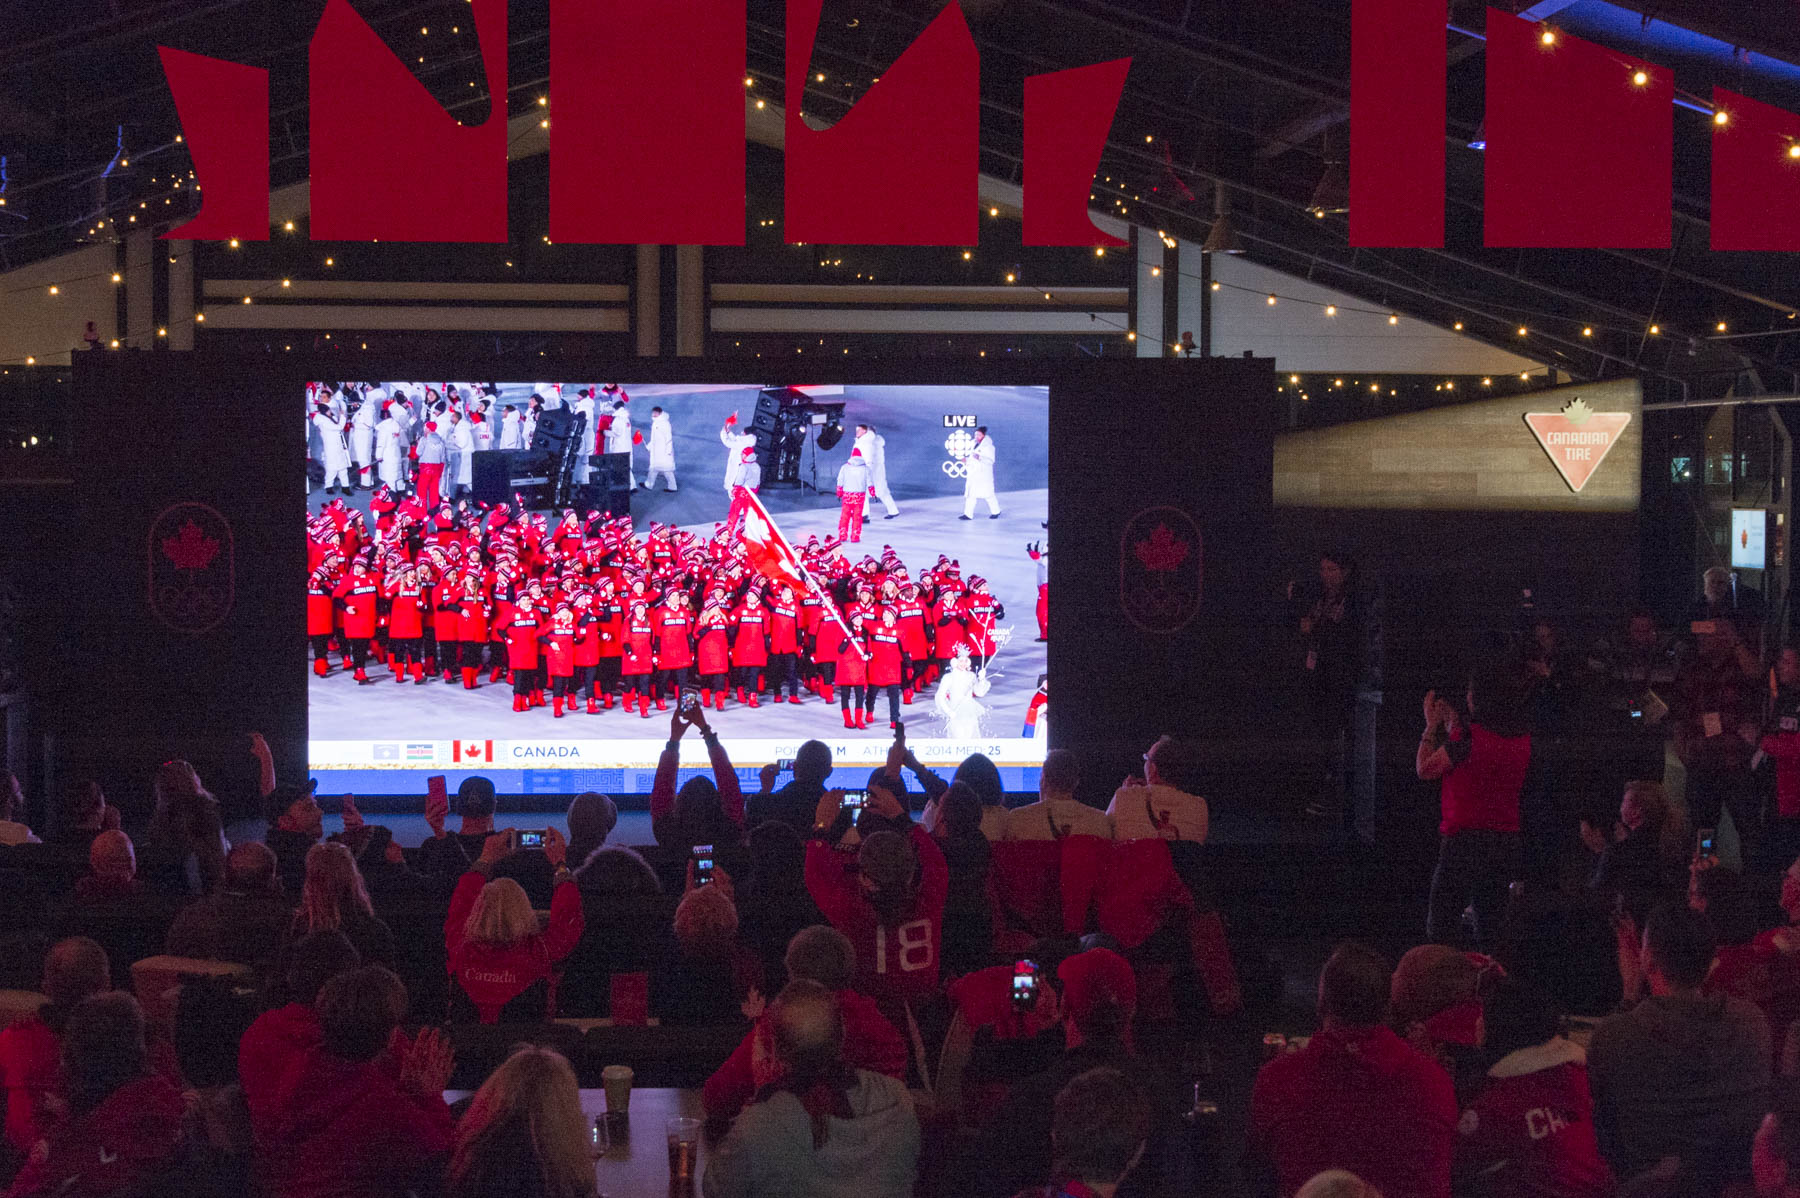 From February 9 to 25, 2018, some 225 Canadian athletes will perform in these Games with the hope and dream on making it to the podium.